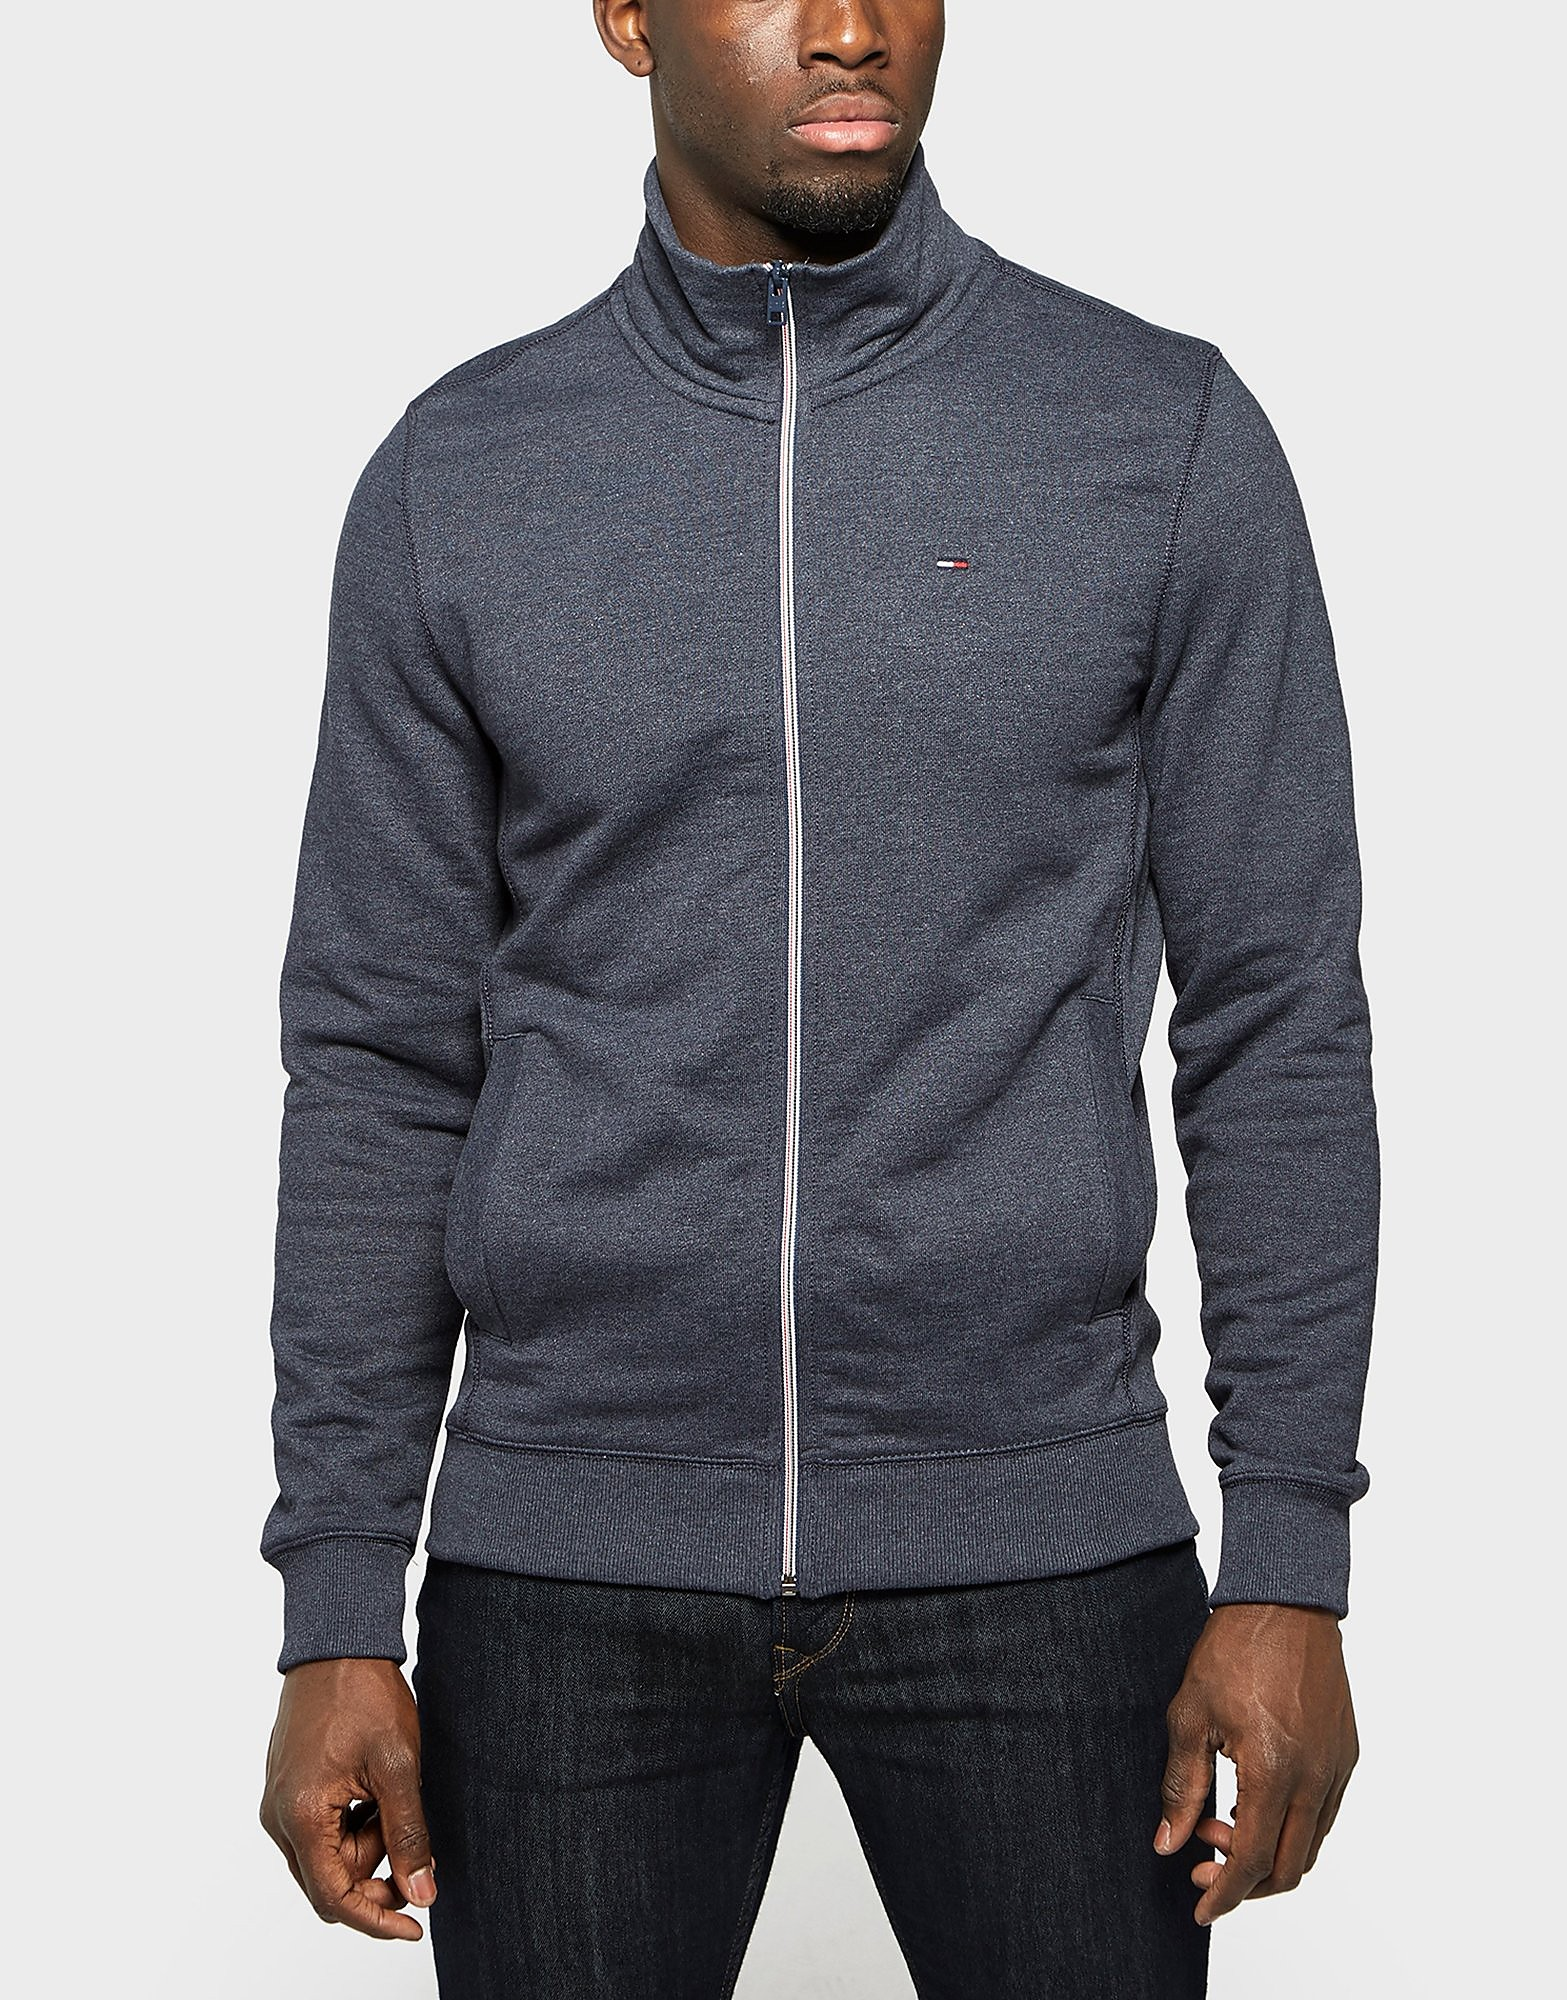 Tommy Hilfiger Loop Track Top